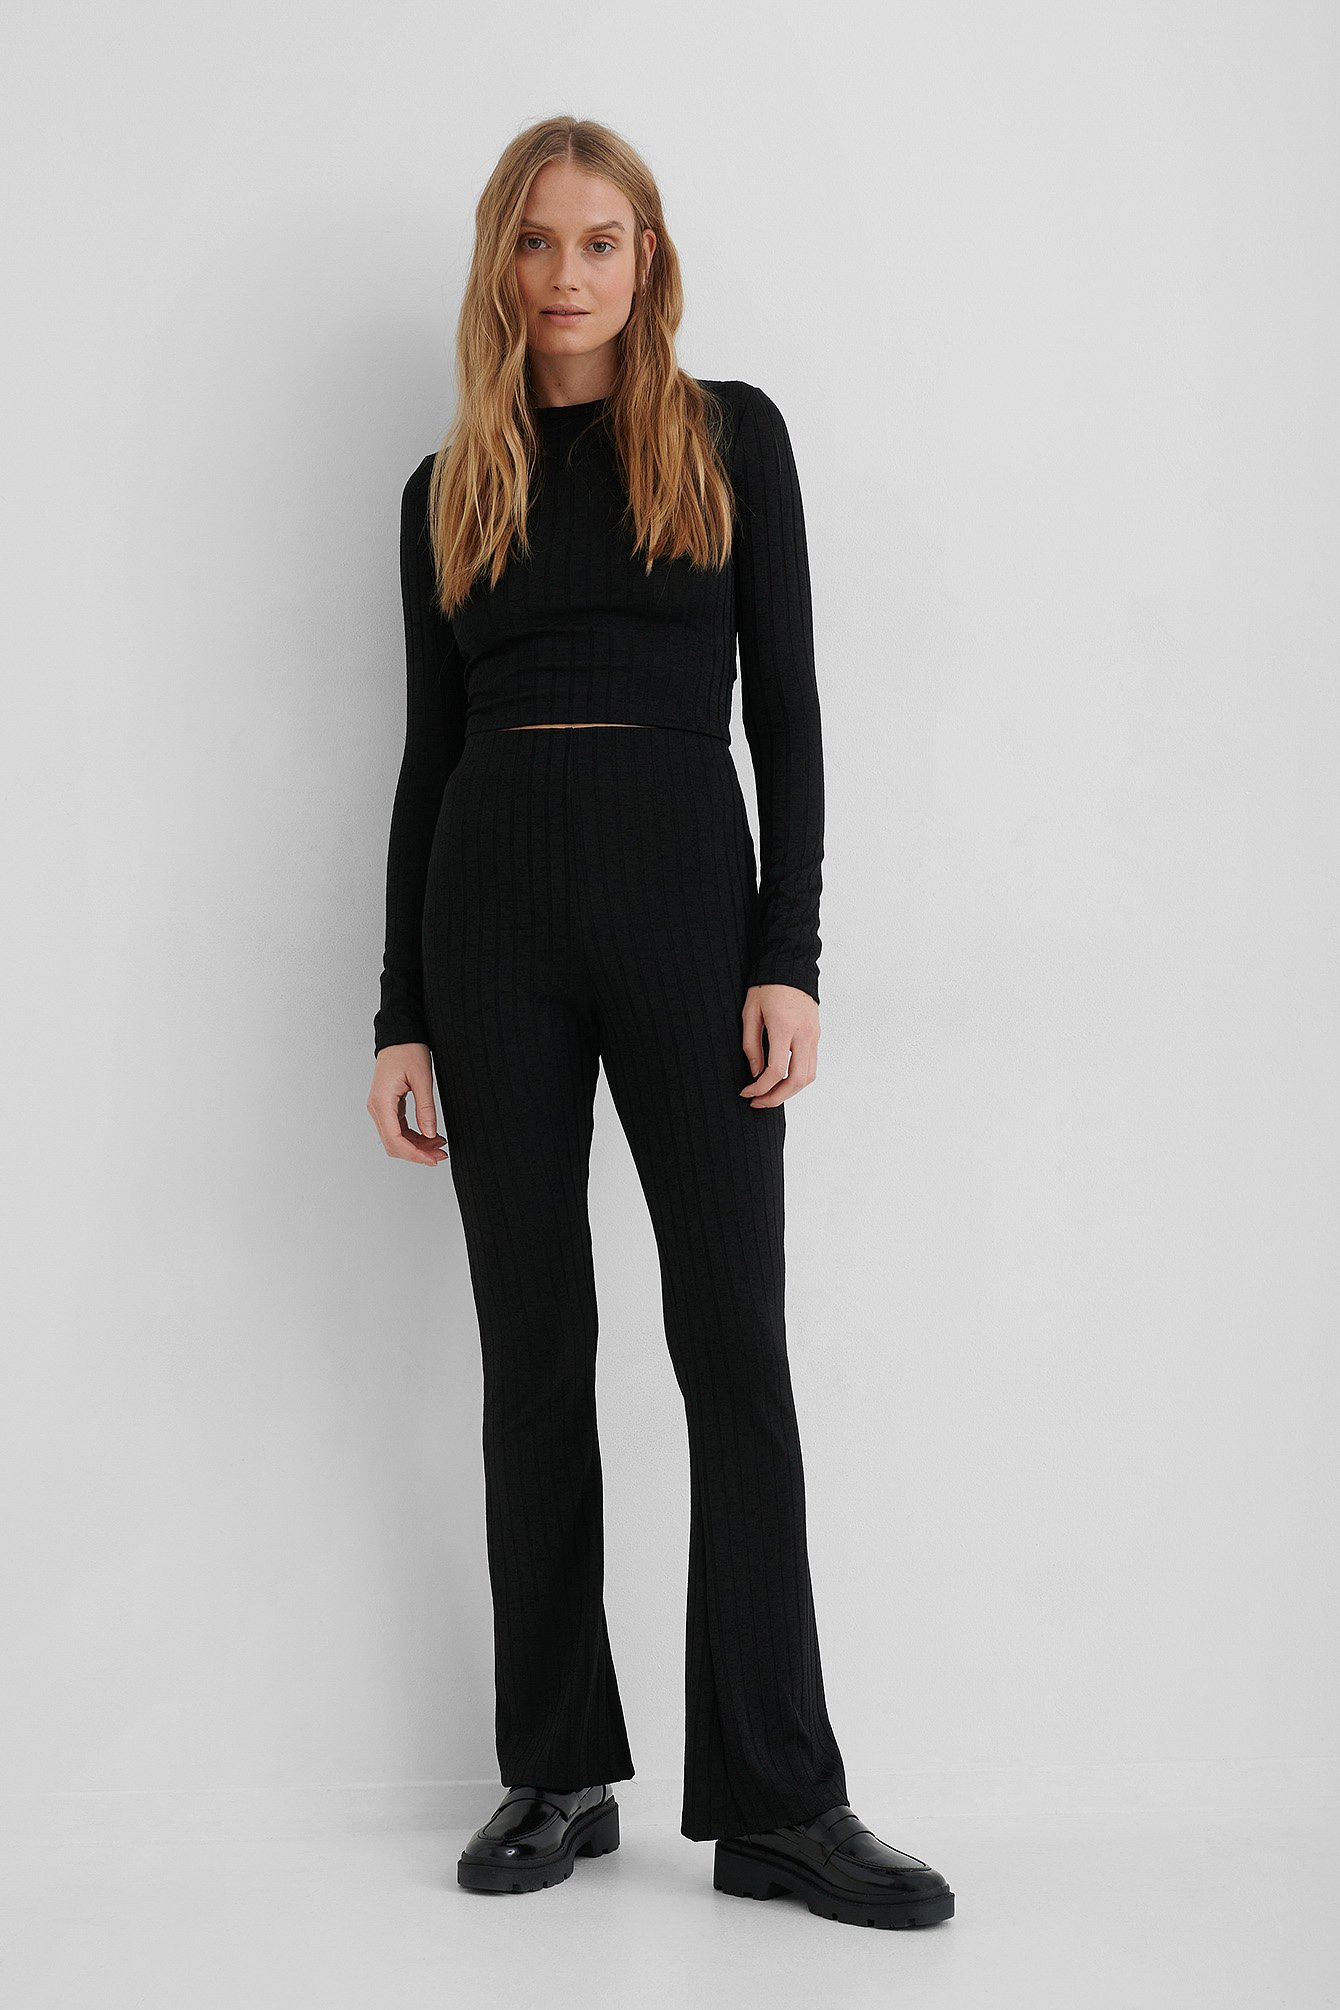 Black High Waist Ribbed Flare Pants